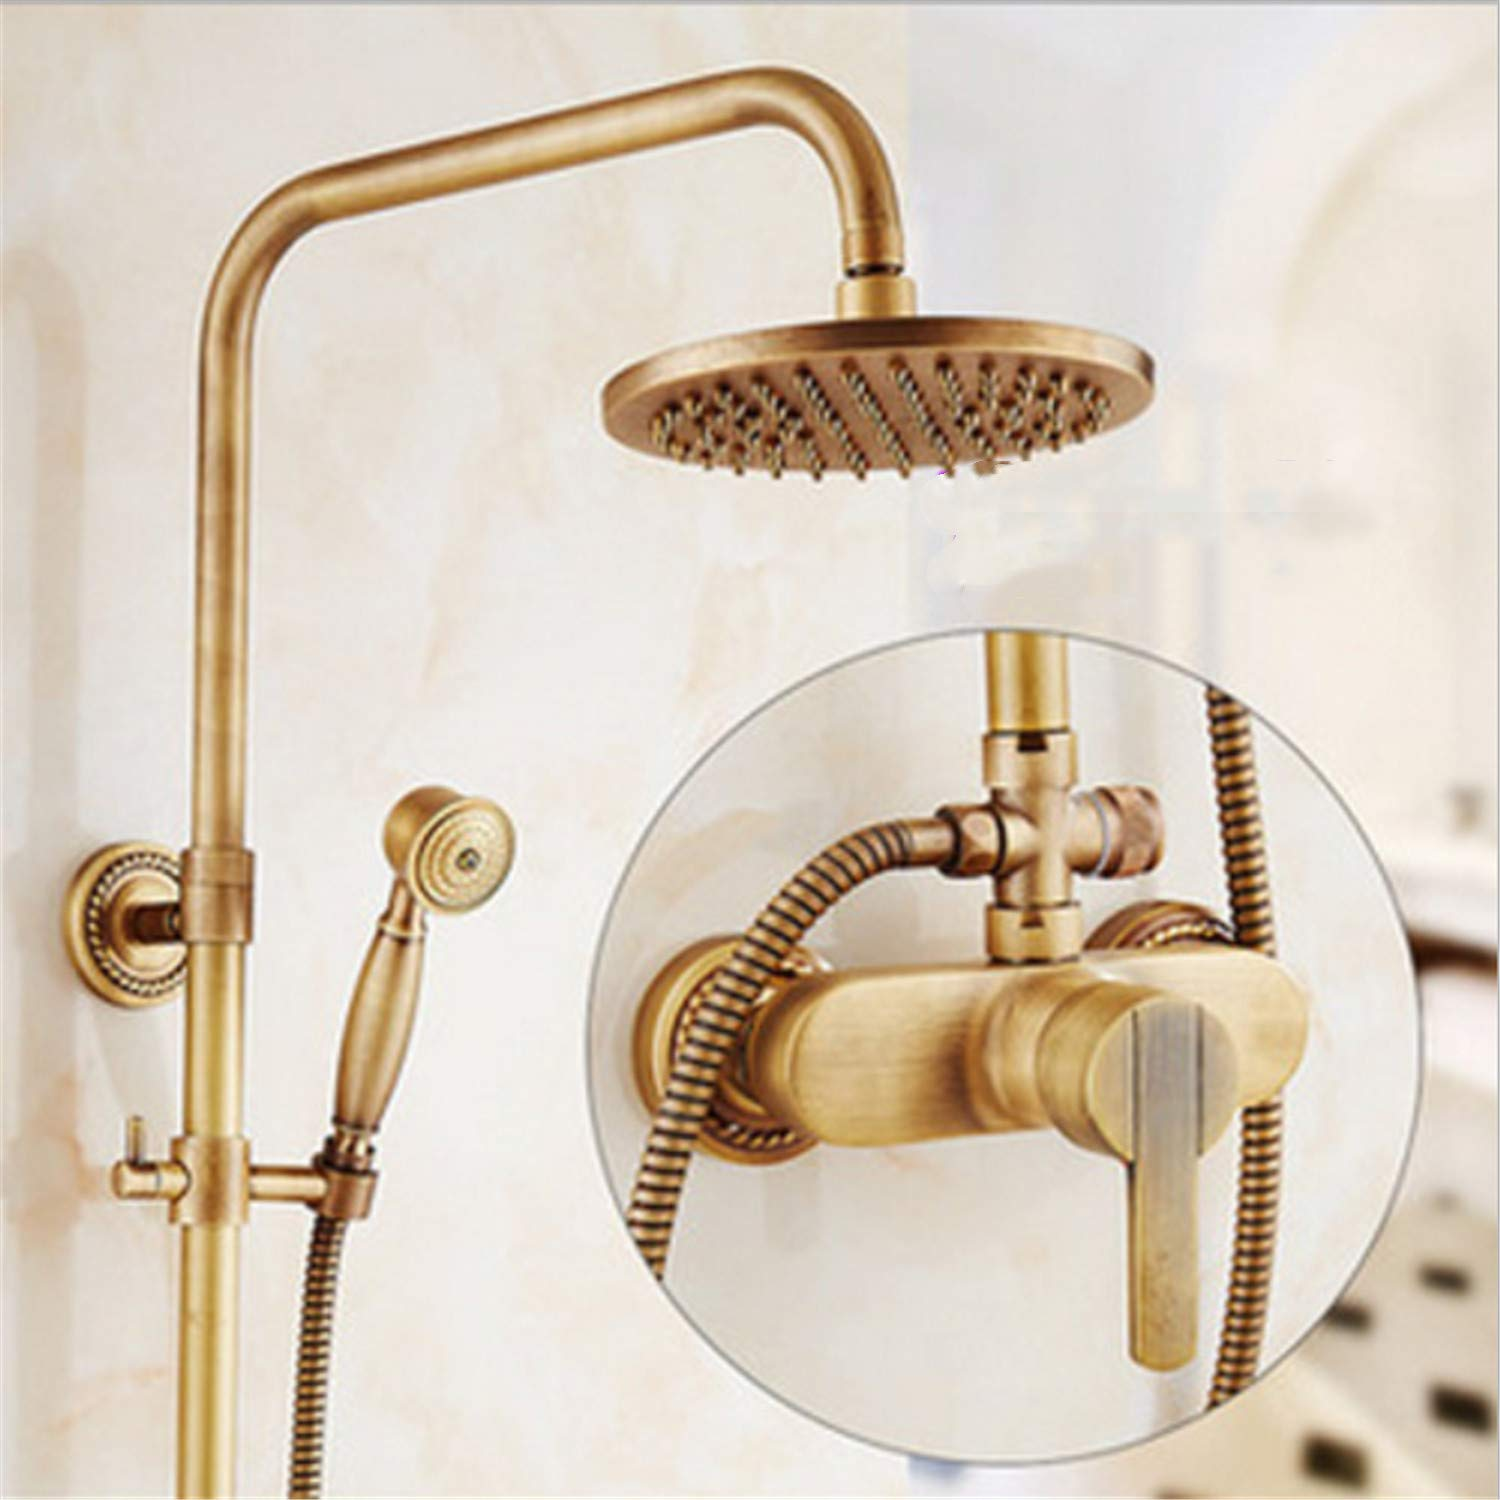 UNIQUE-F Selected All-Copper Antique Shower Set Rain Shower Type Bathroom Supercharged Spray Gun Hot Cold Water Effluent Fine 3 Styles by UNIQUE-F (Image #1)